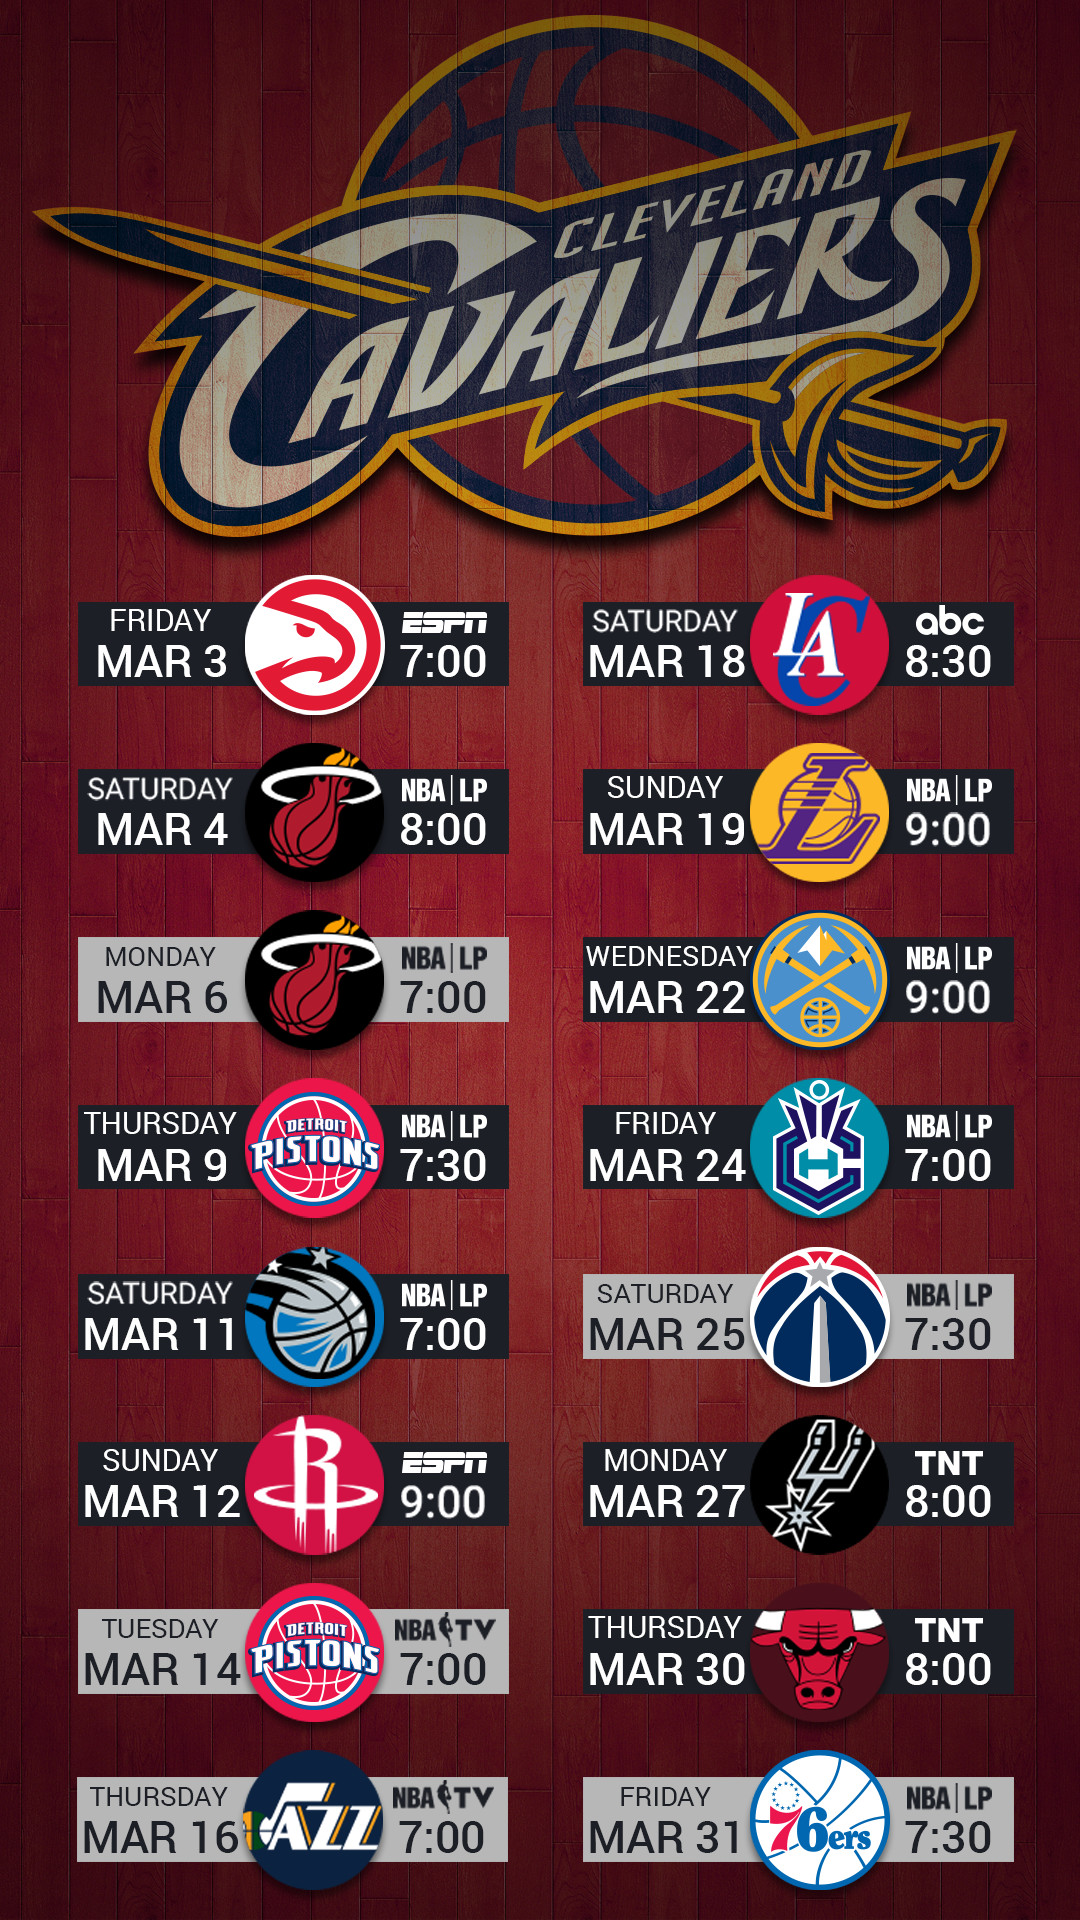 Cleveland Cavaliers 2017 Mobile Lock Screen Wallpaper - Cleveland Cavaliers Team Logo - HD Wallpaper